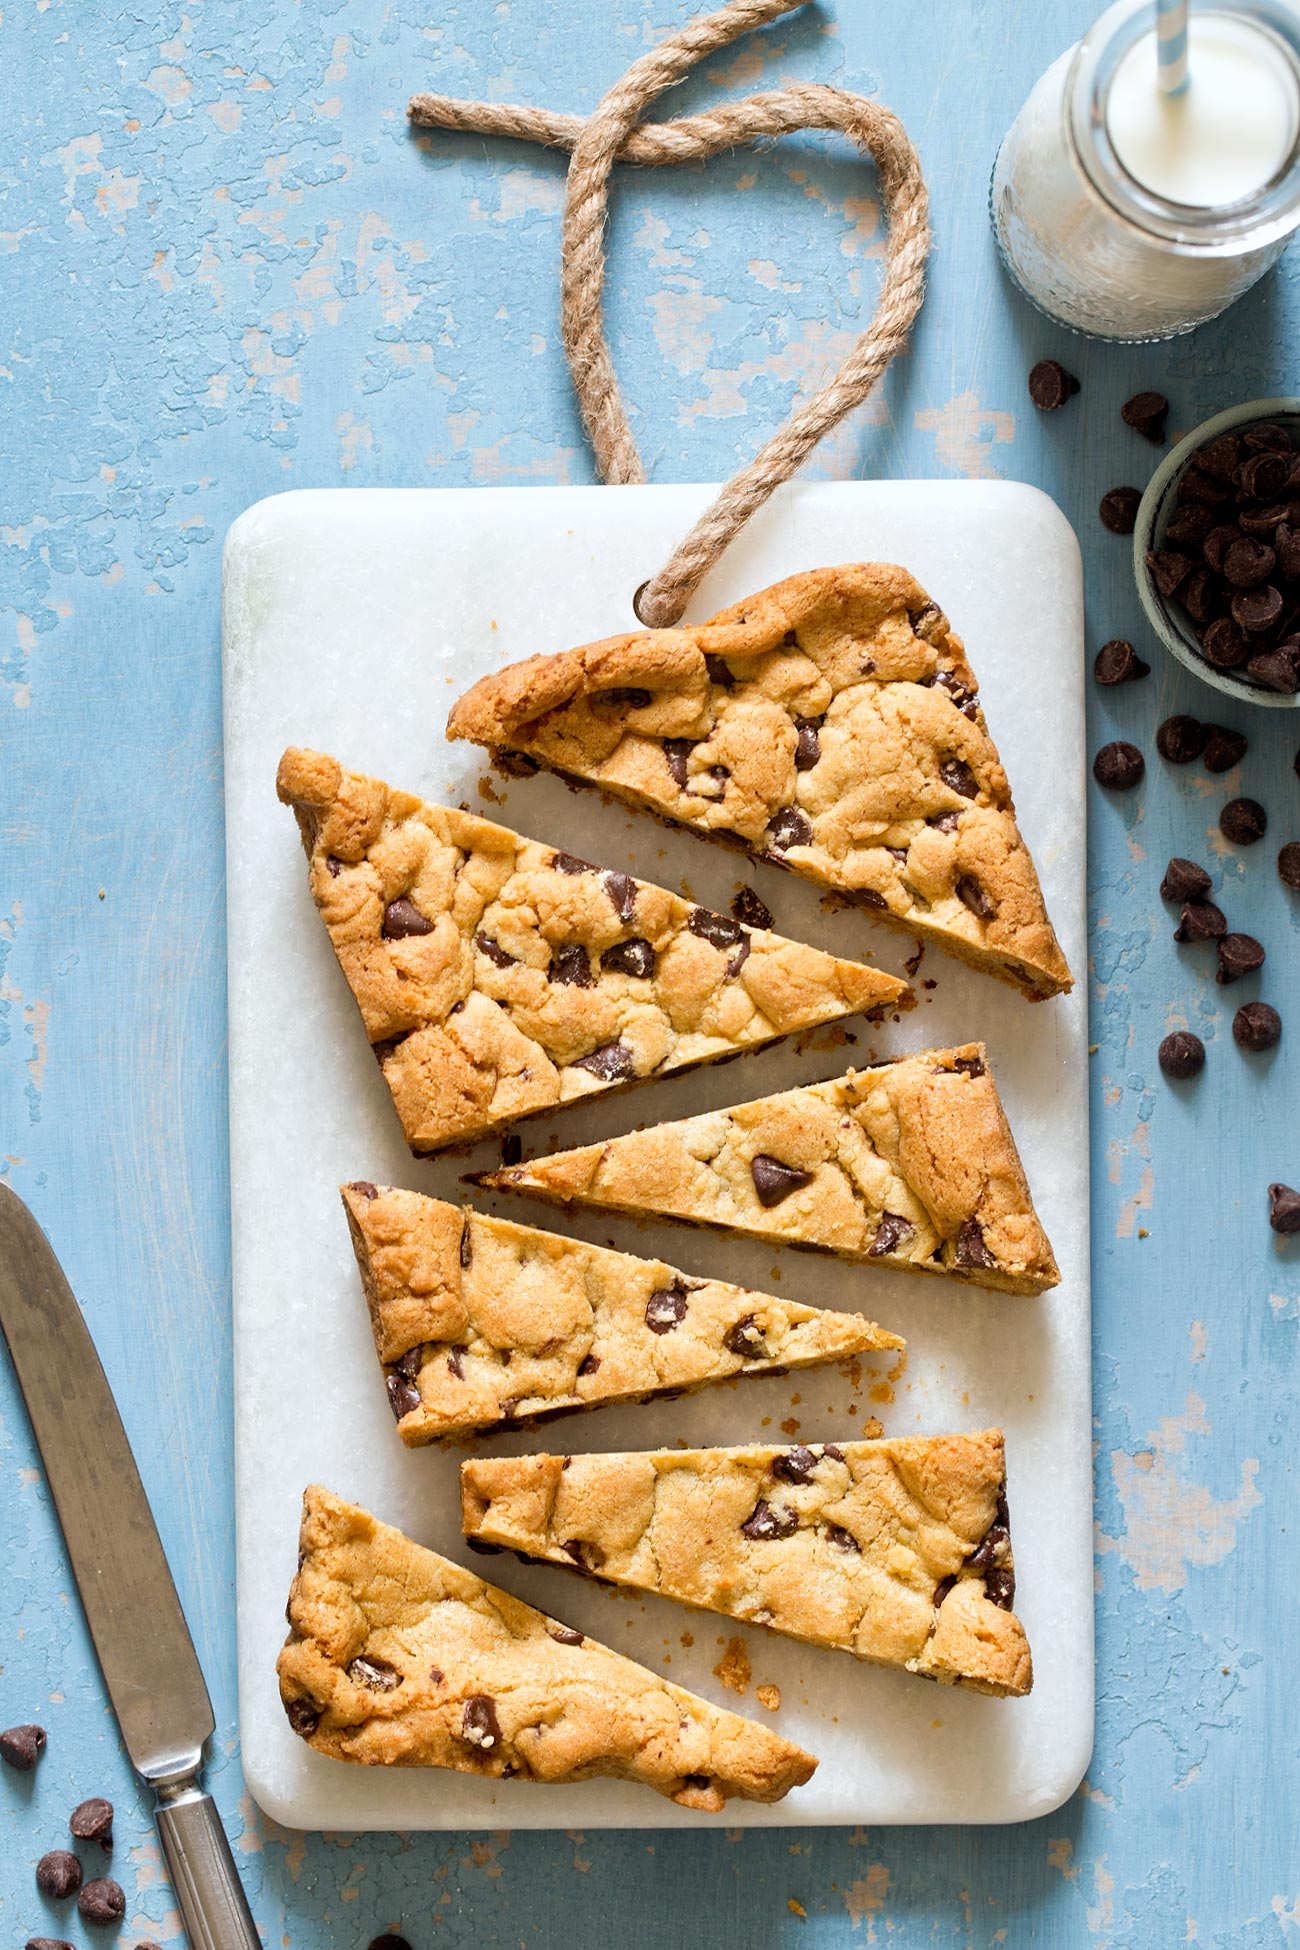 Small Batch Chocolate Chip Cookies cut into bars